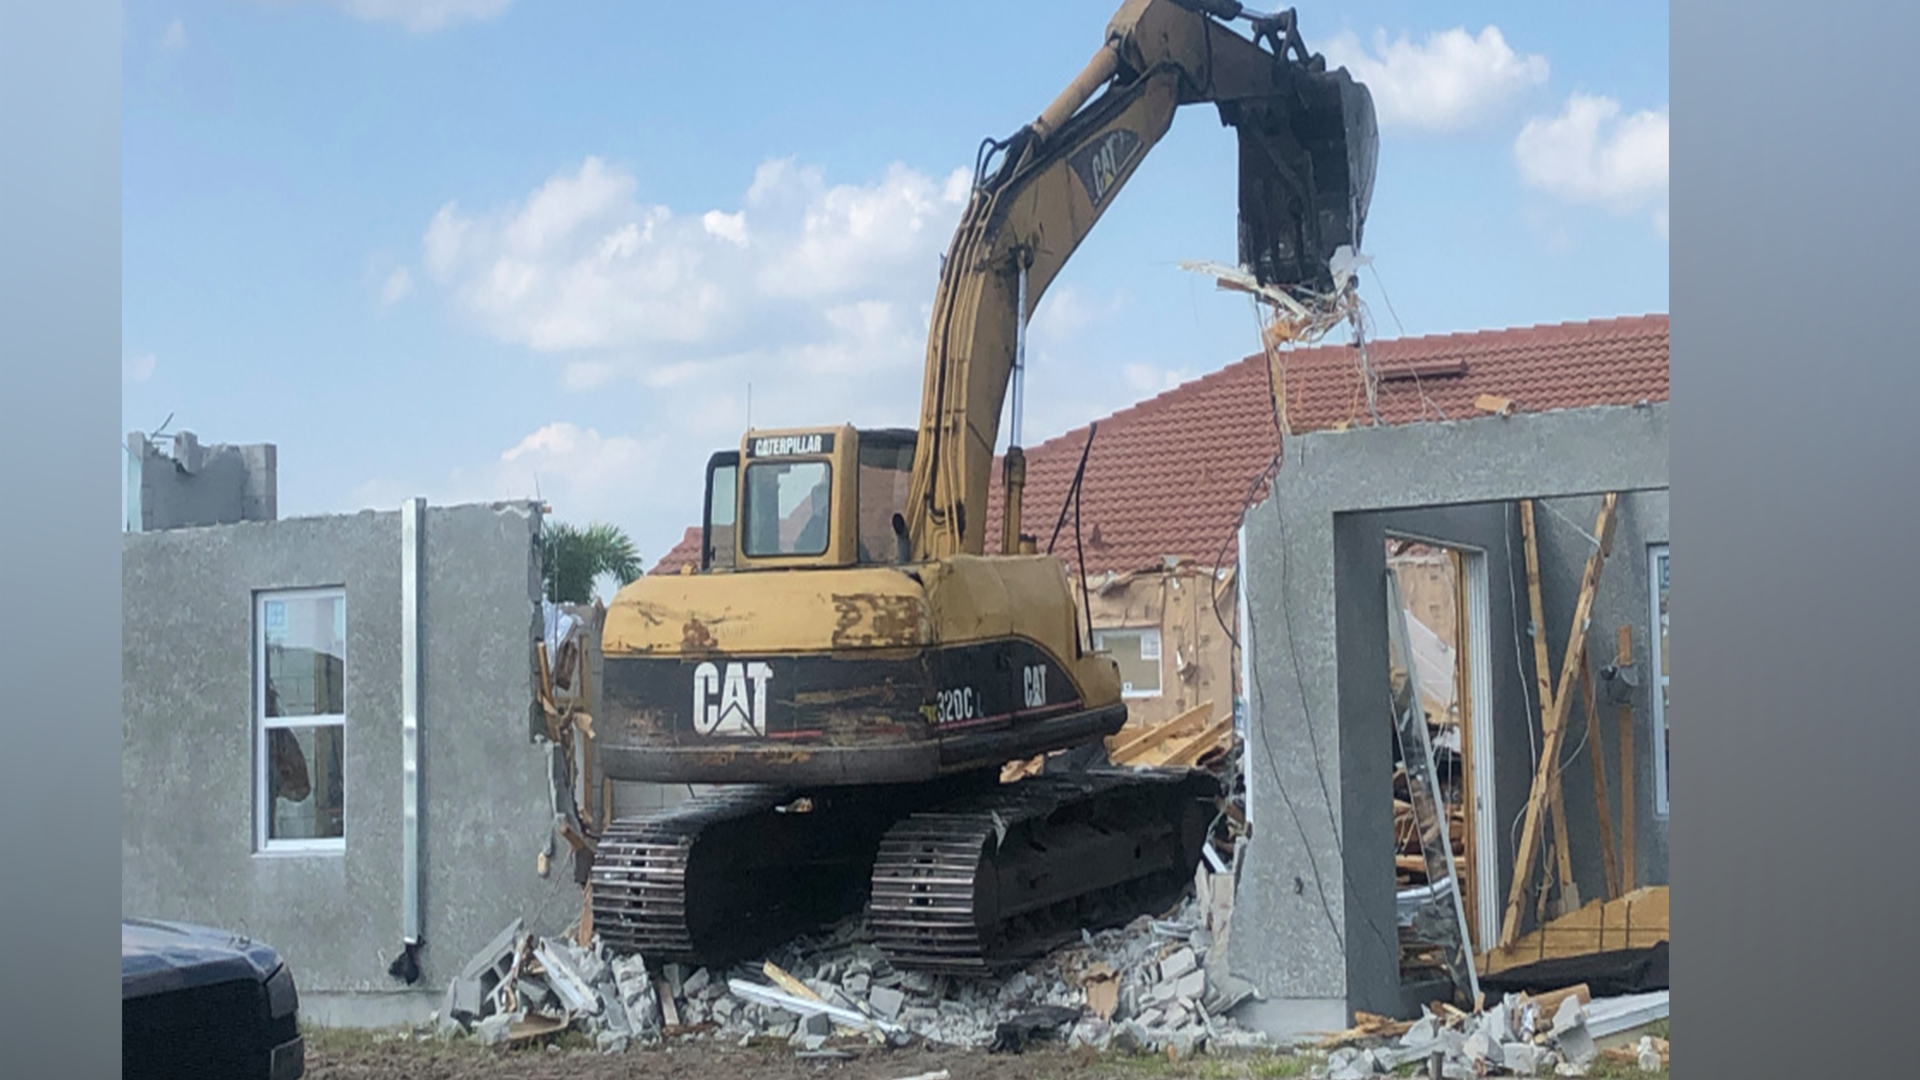 Builder Ashton Woods demolished a brand new home in Bradenton, Fla. after building it too close to the neighbor's home. (Photo courtesy: WFLA)